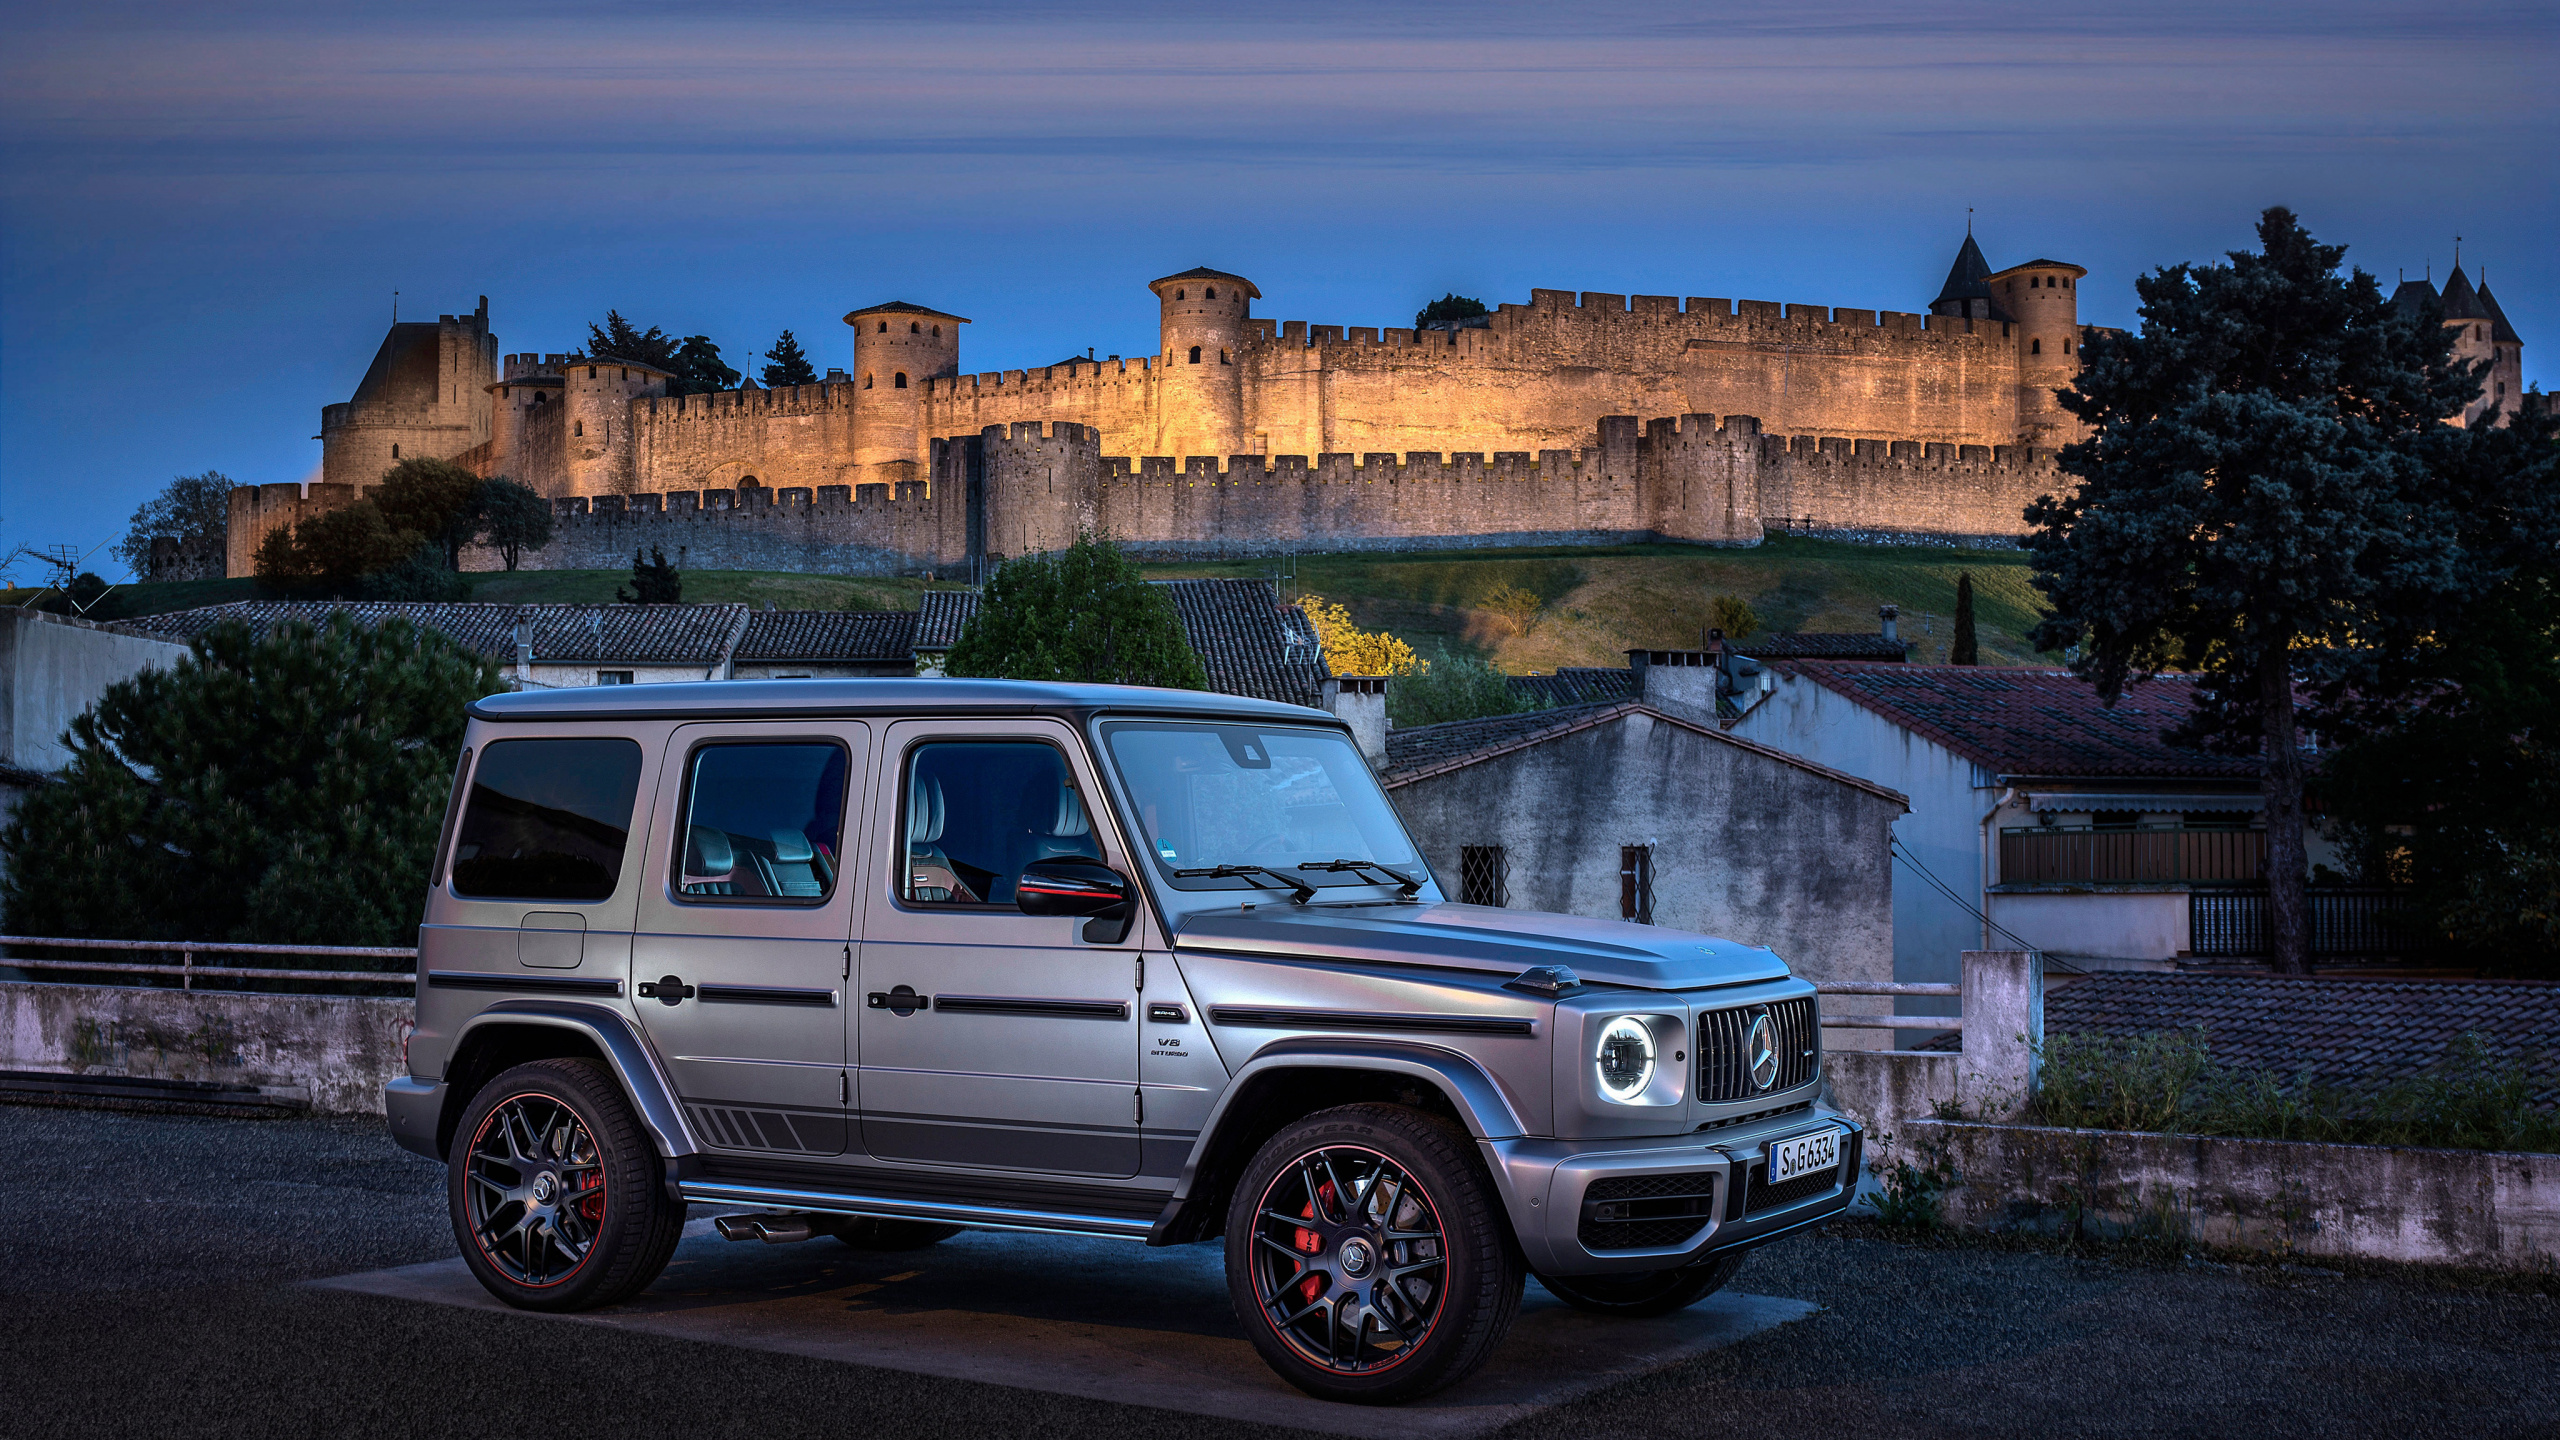 G63 Amg Wallpaper 4k - Albumccars - Cars Images Collection